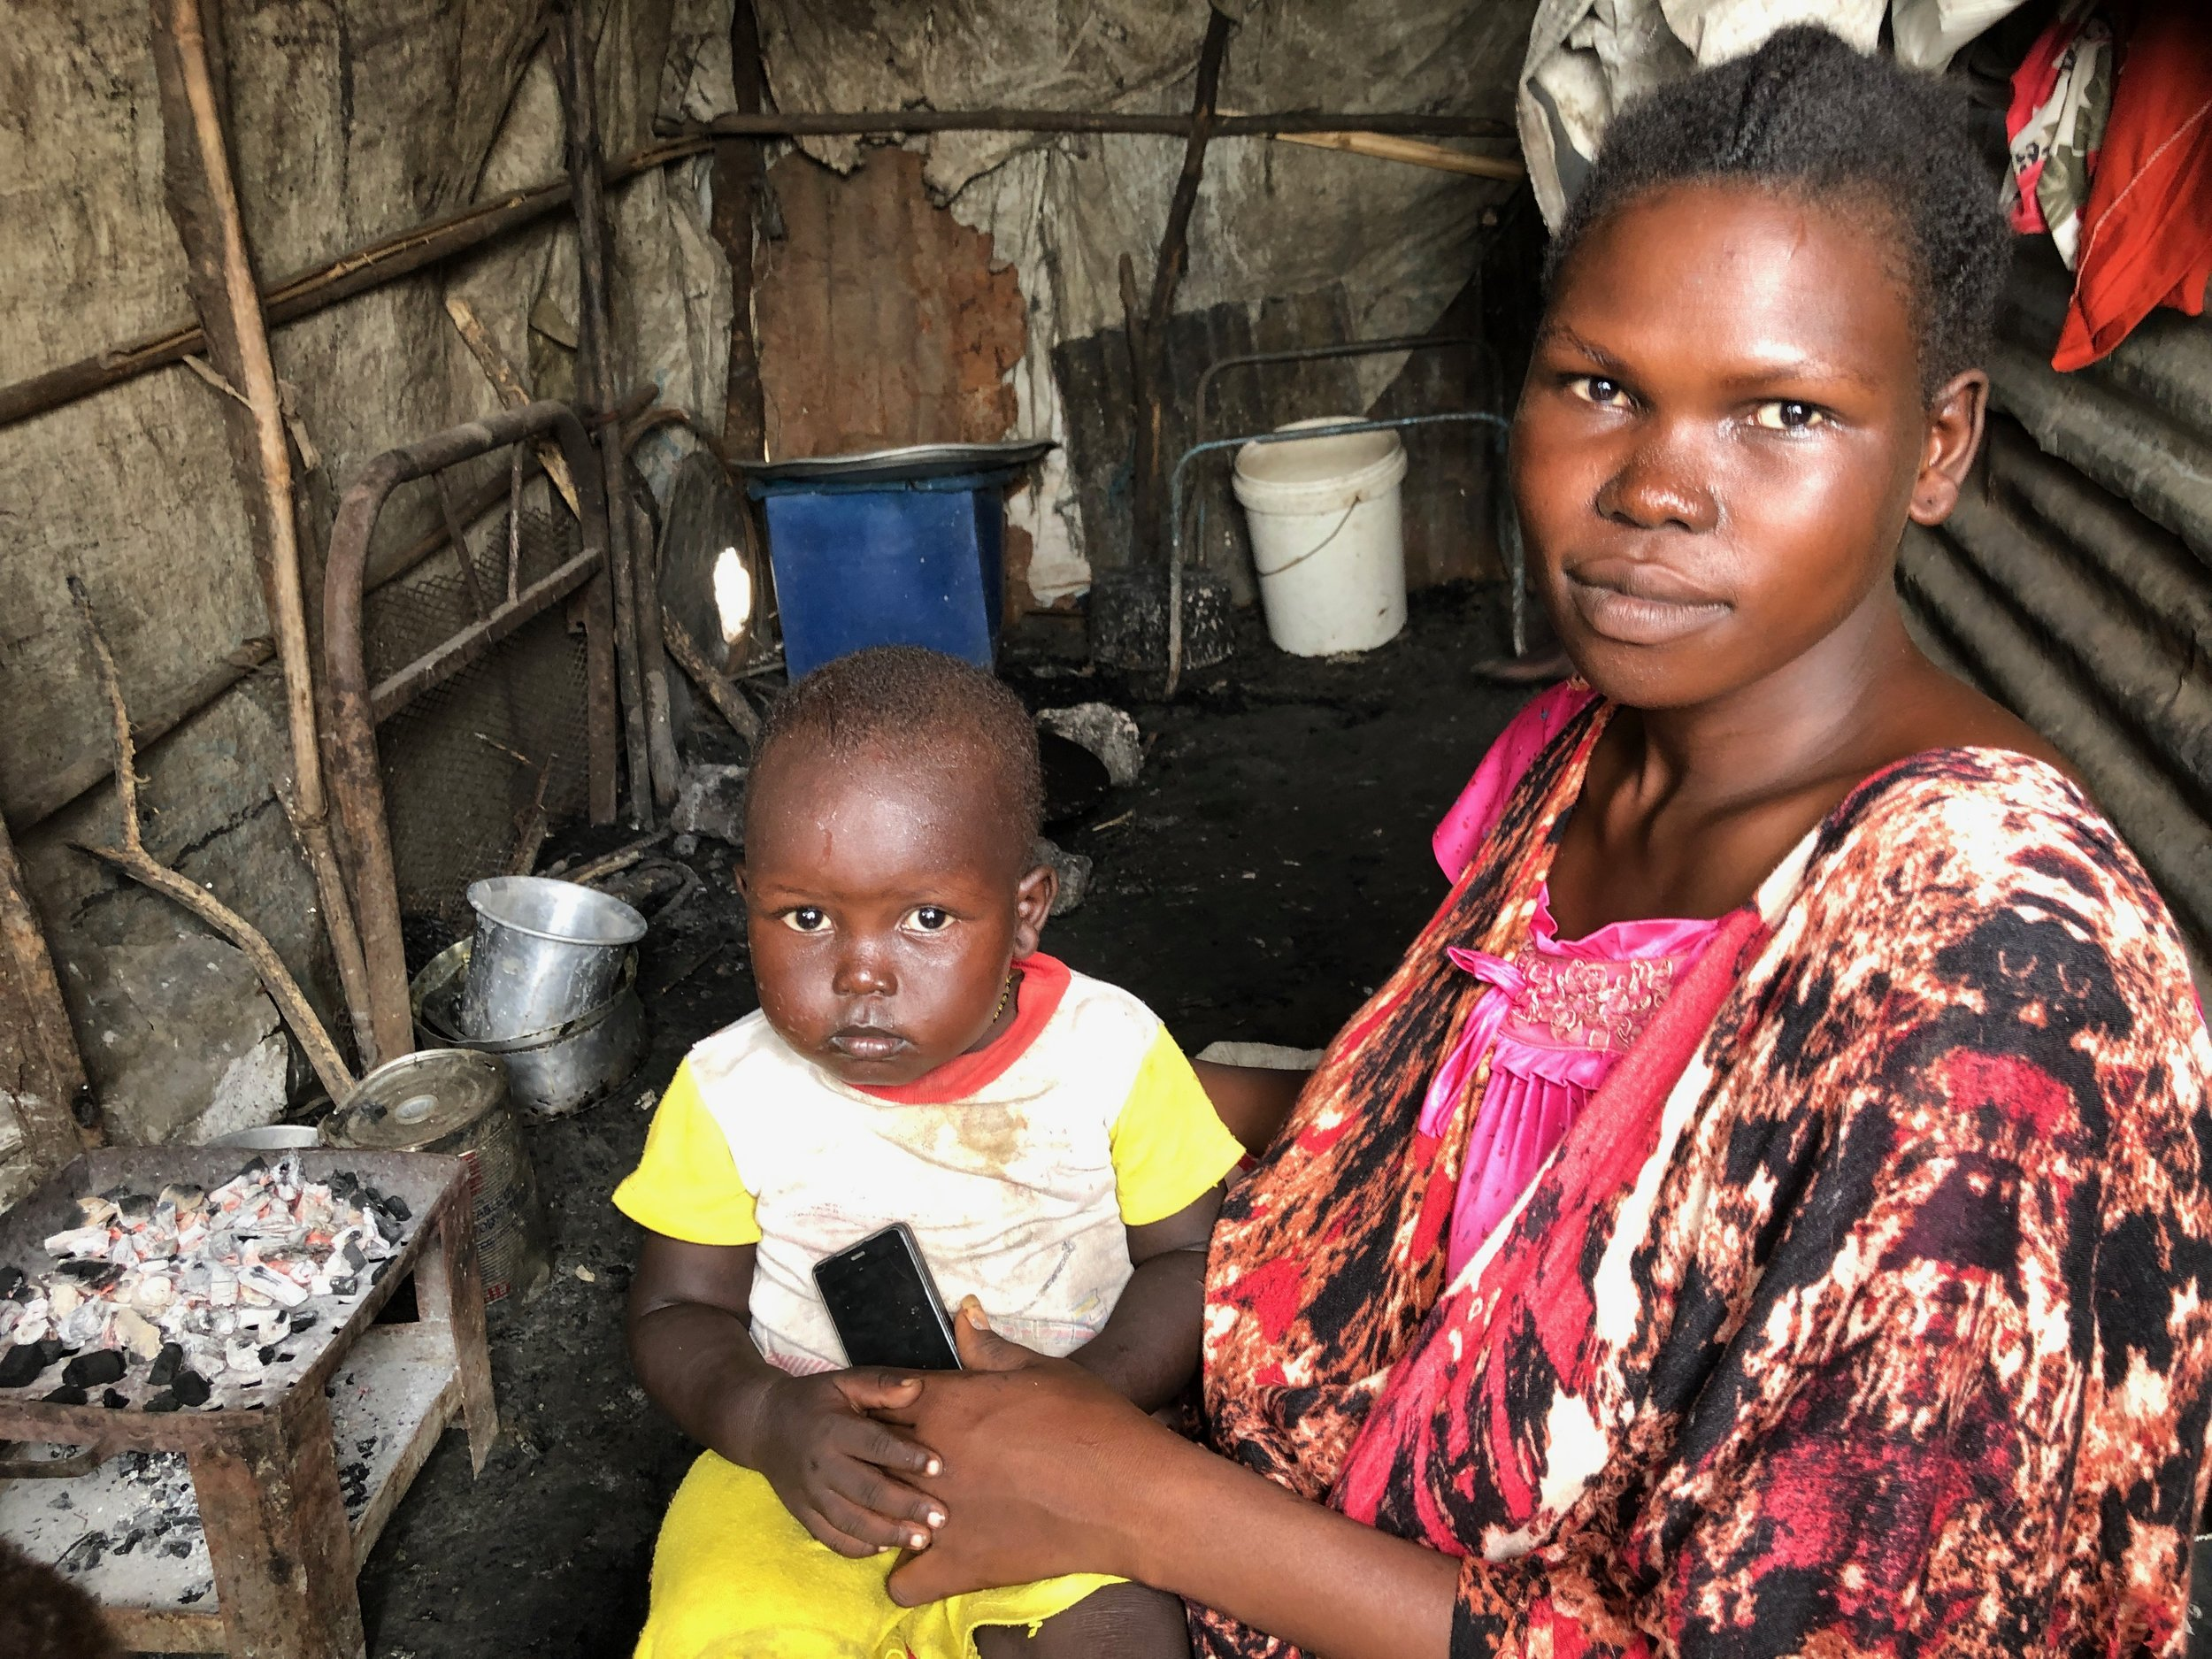 A woman the team interviewed in the Malakal POC, like so many other young mothers, fears leaving the POC because there are still reports of attacks against women and girls around the country.